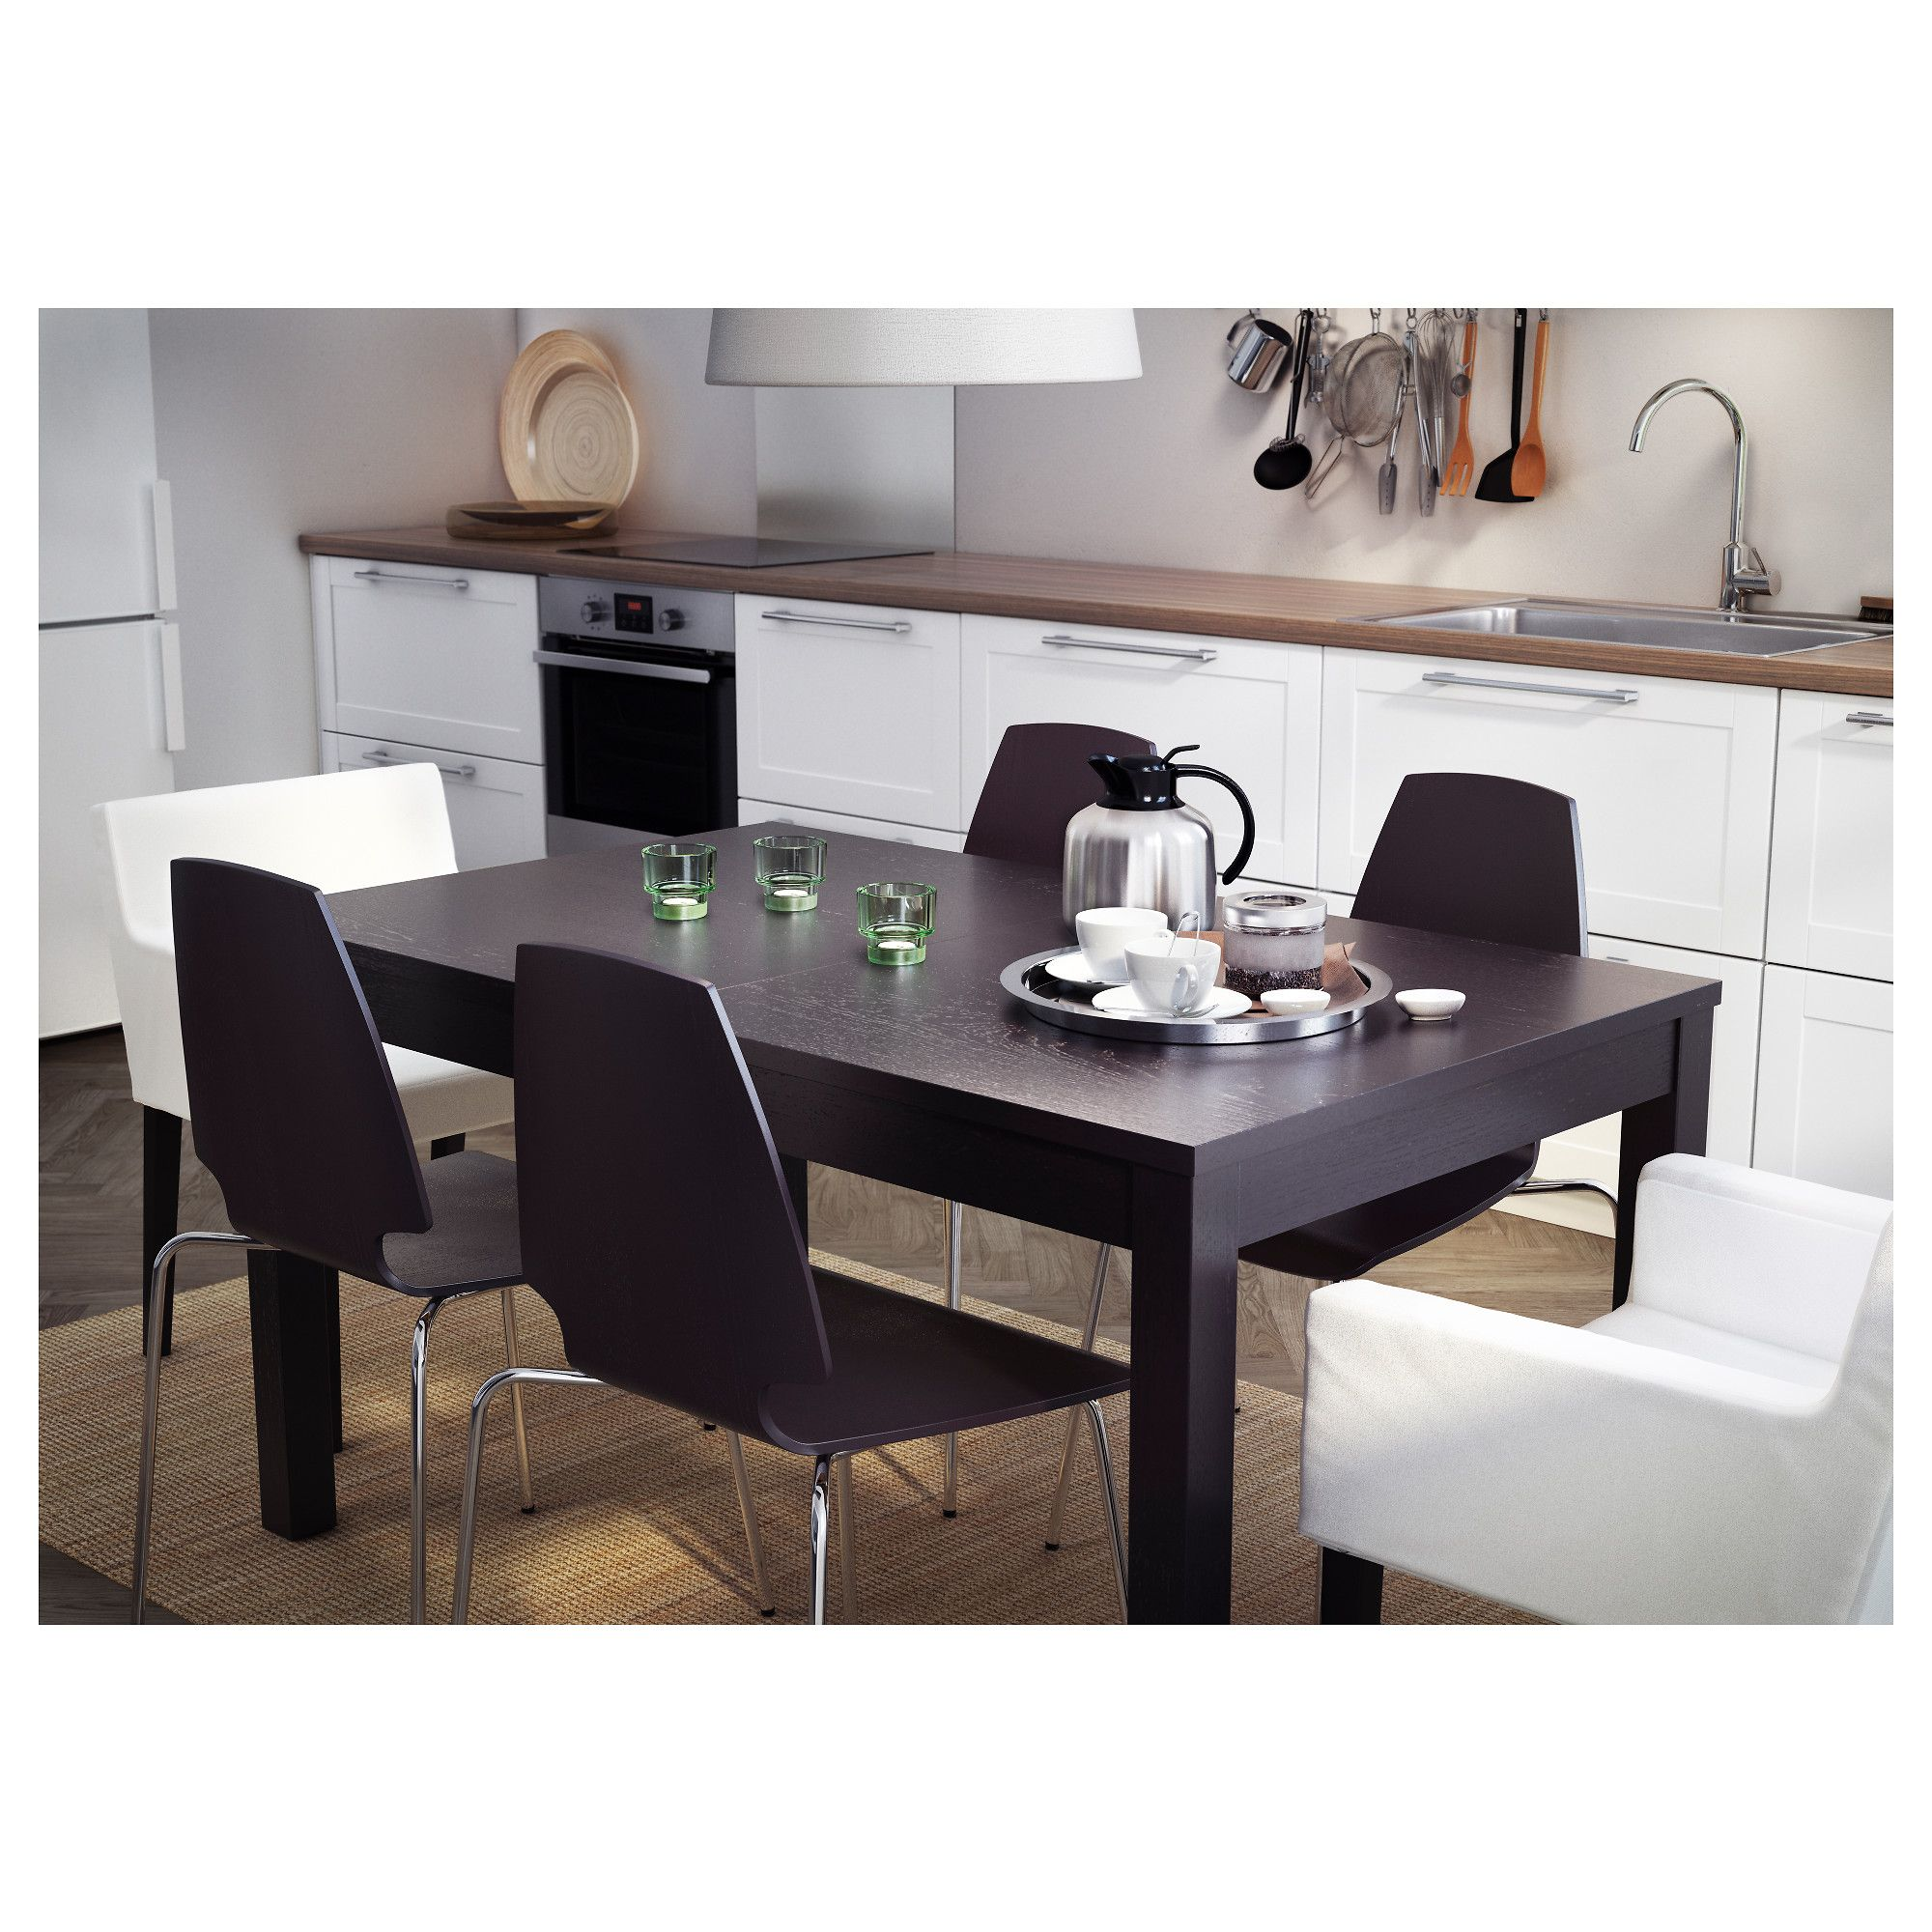 Shop For Furniture Home Accessories More Dining Table Ikea